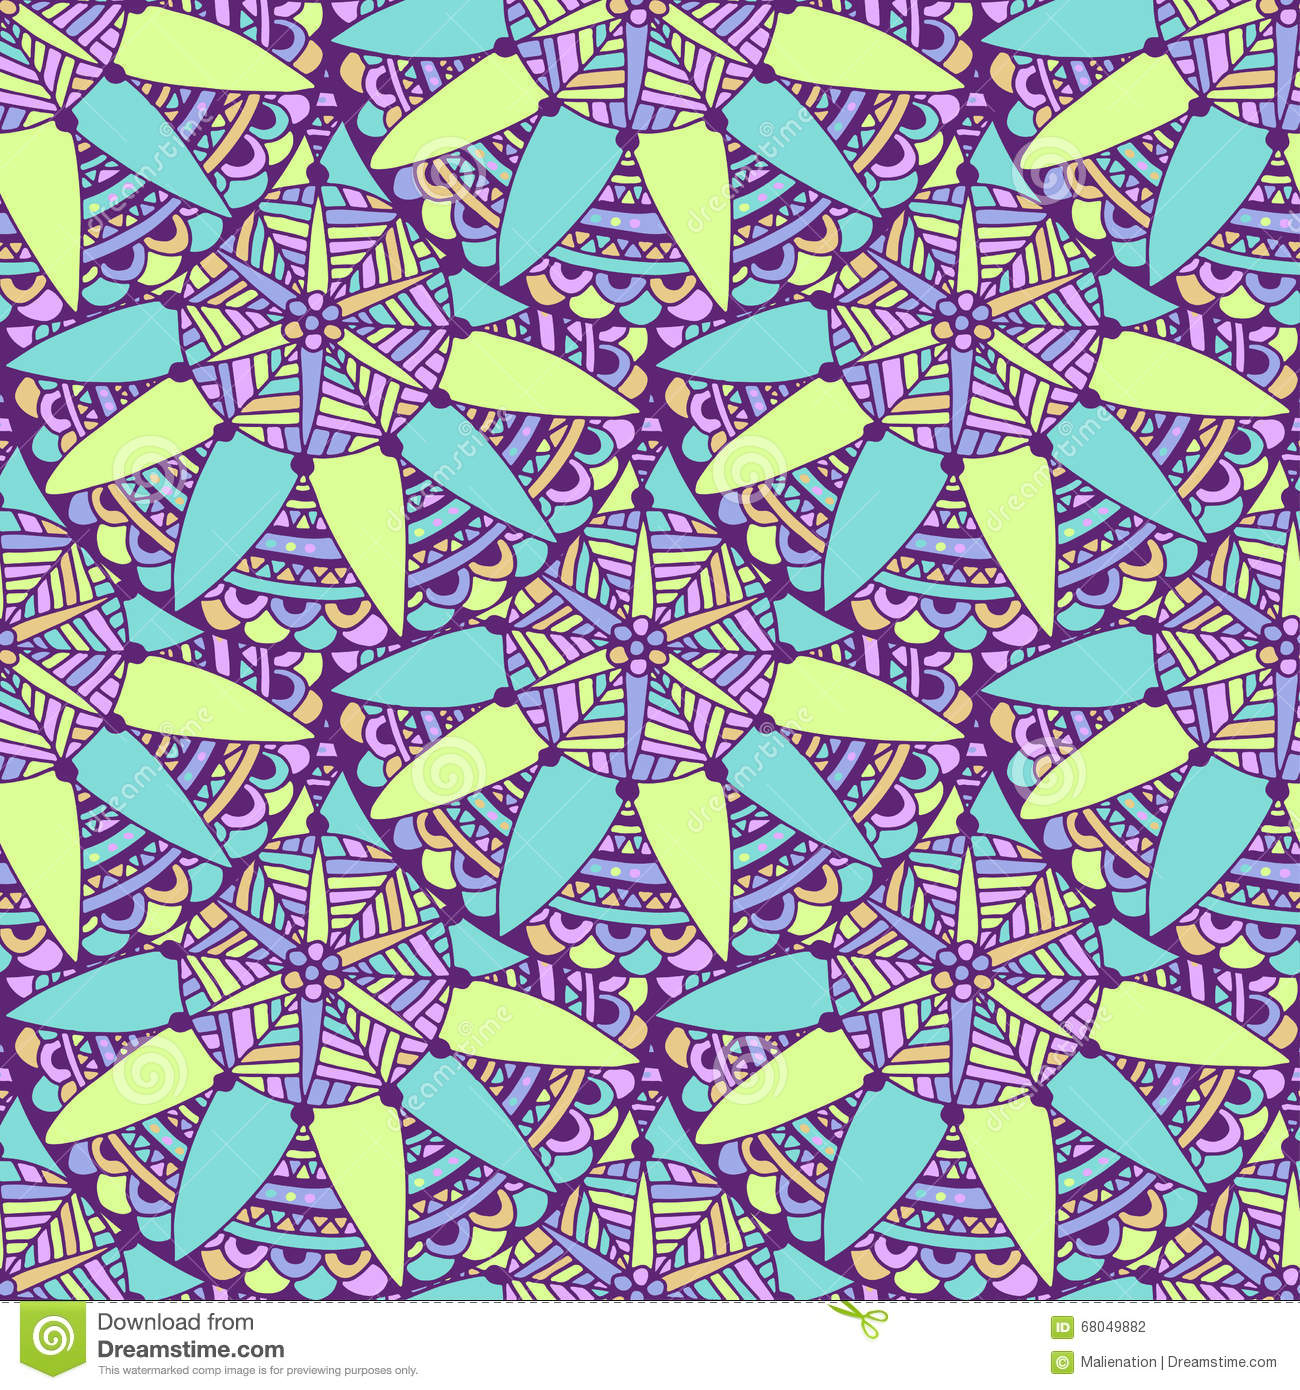 how to make a seamless pattern in inkscape